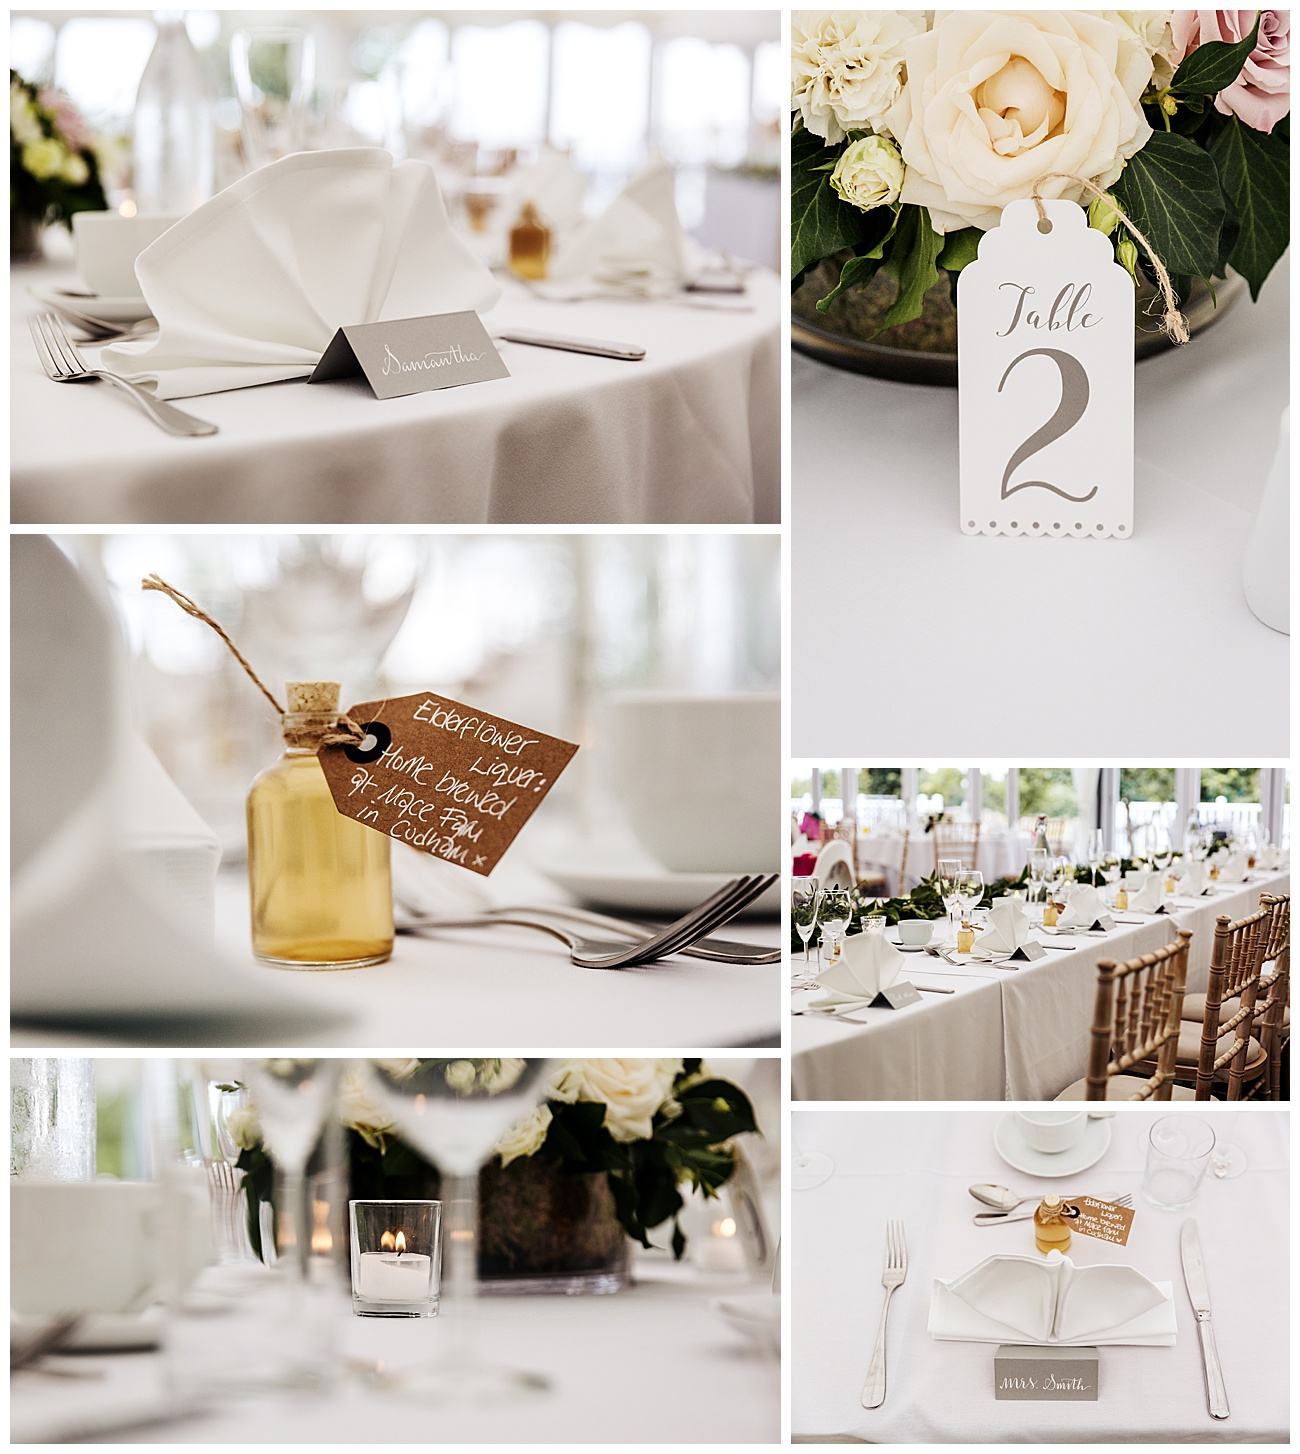 wedding table details at high house wedding venue